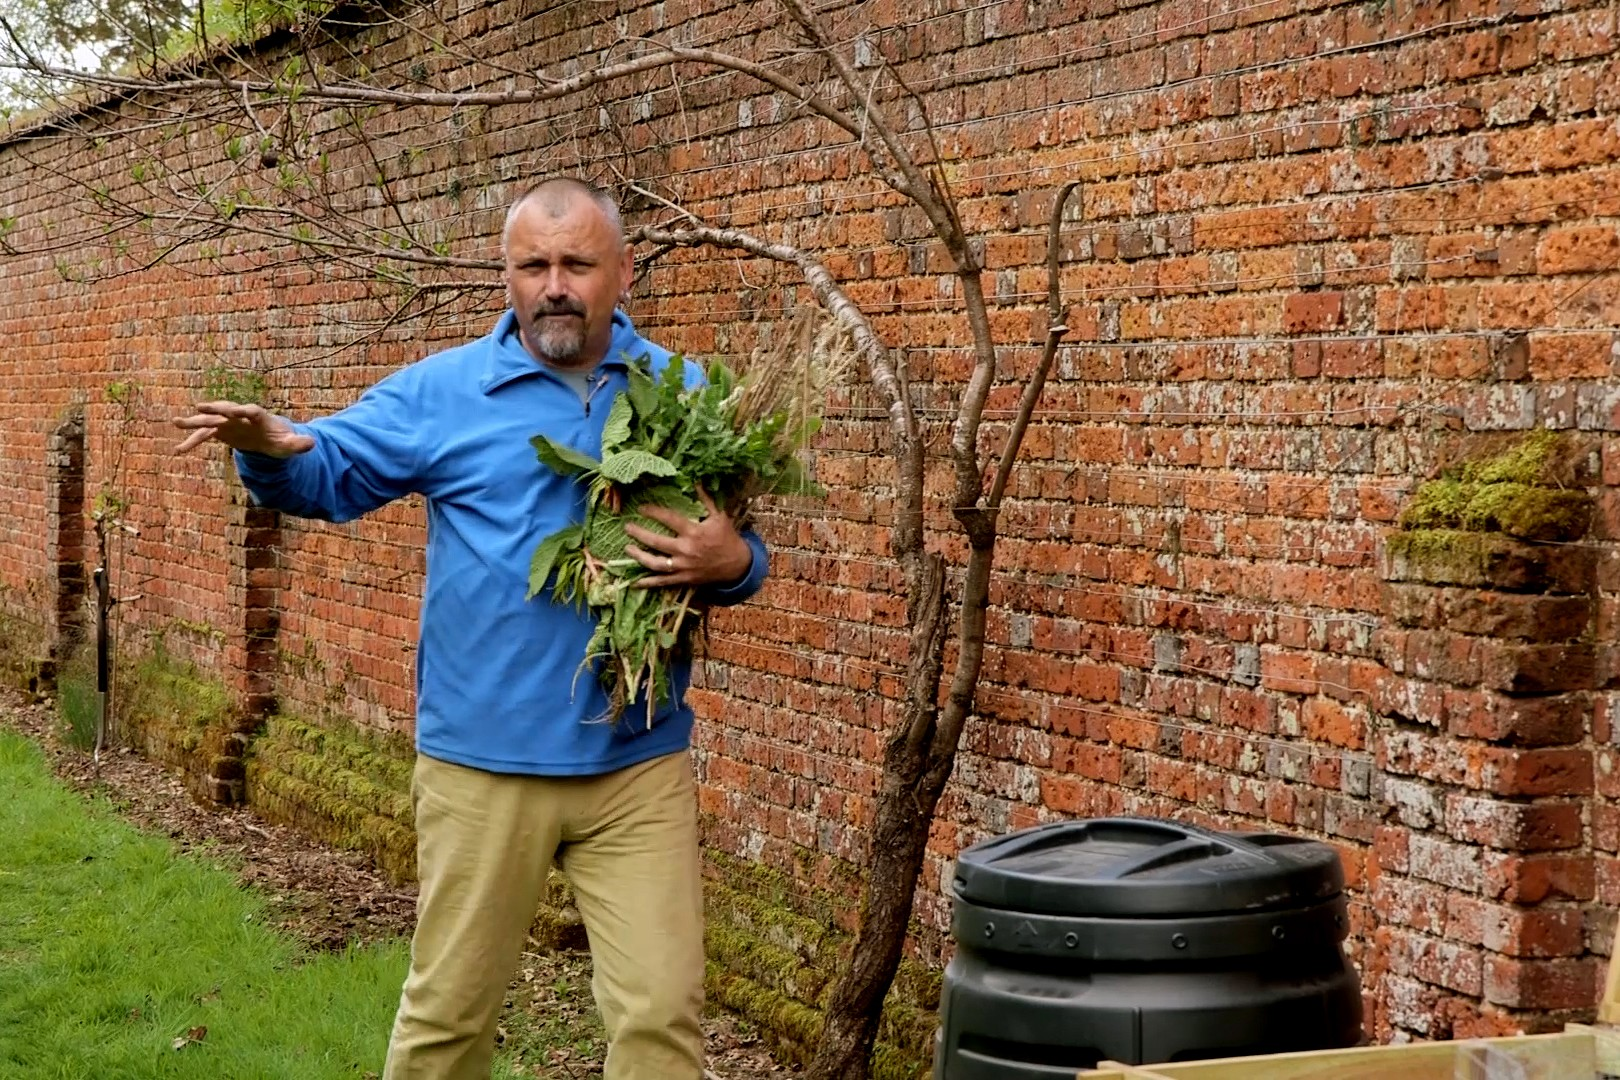 No Fuss Guide Types of composter